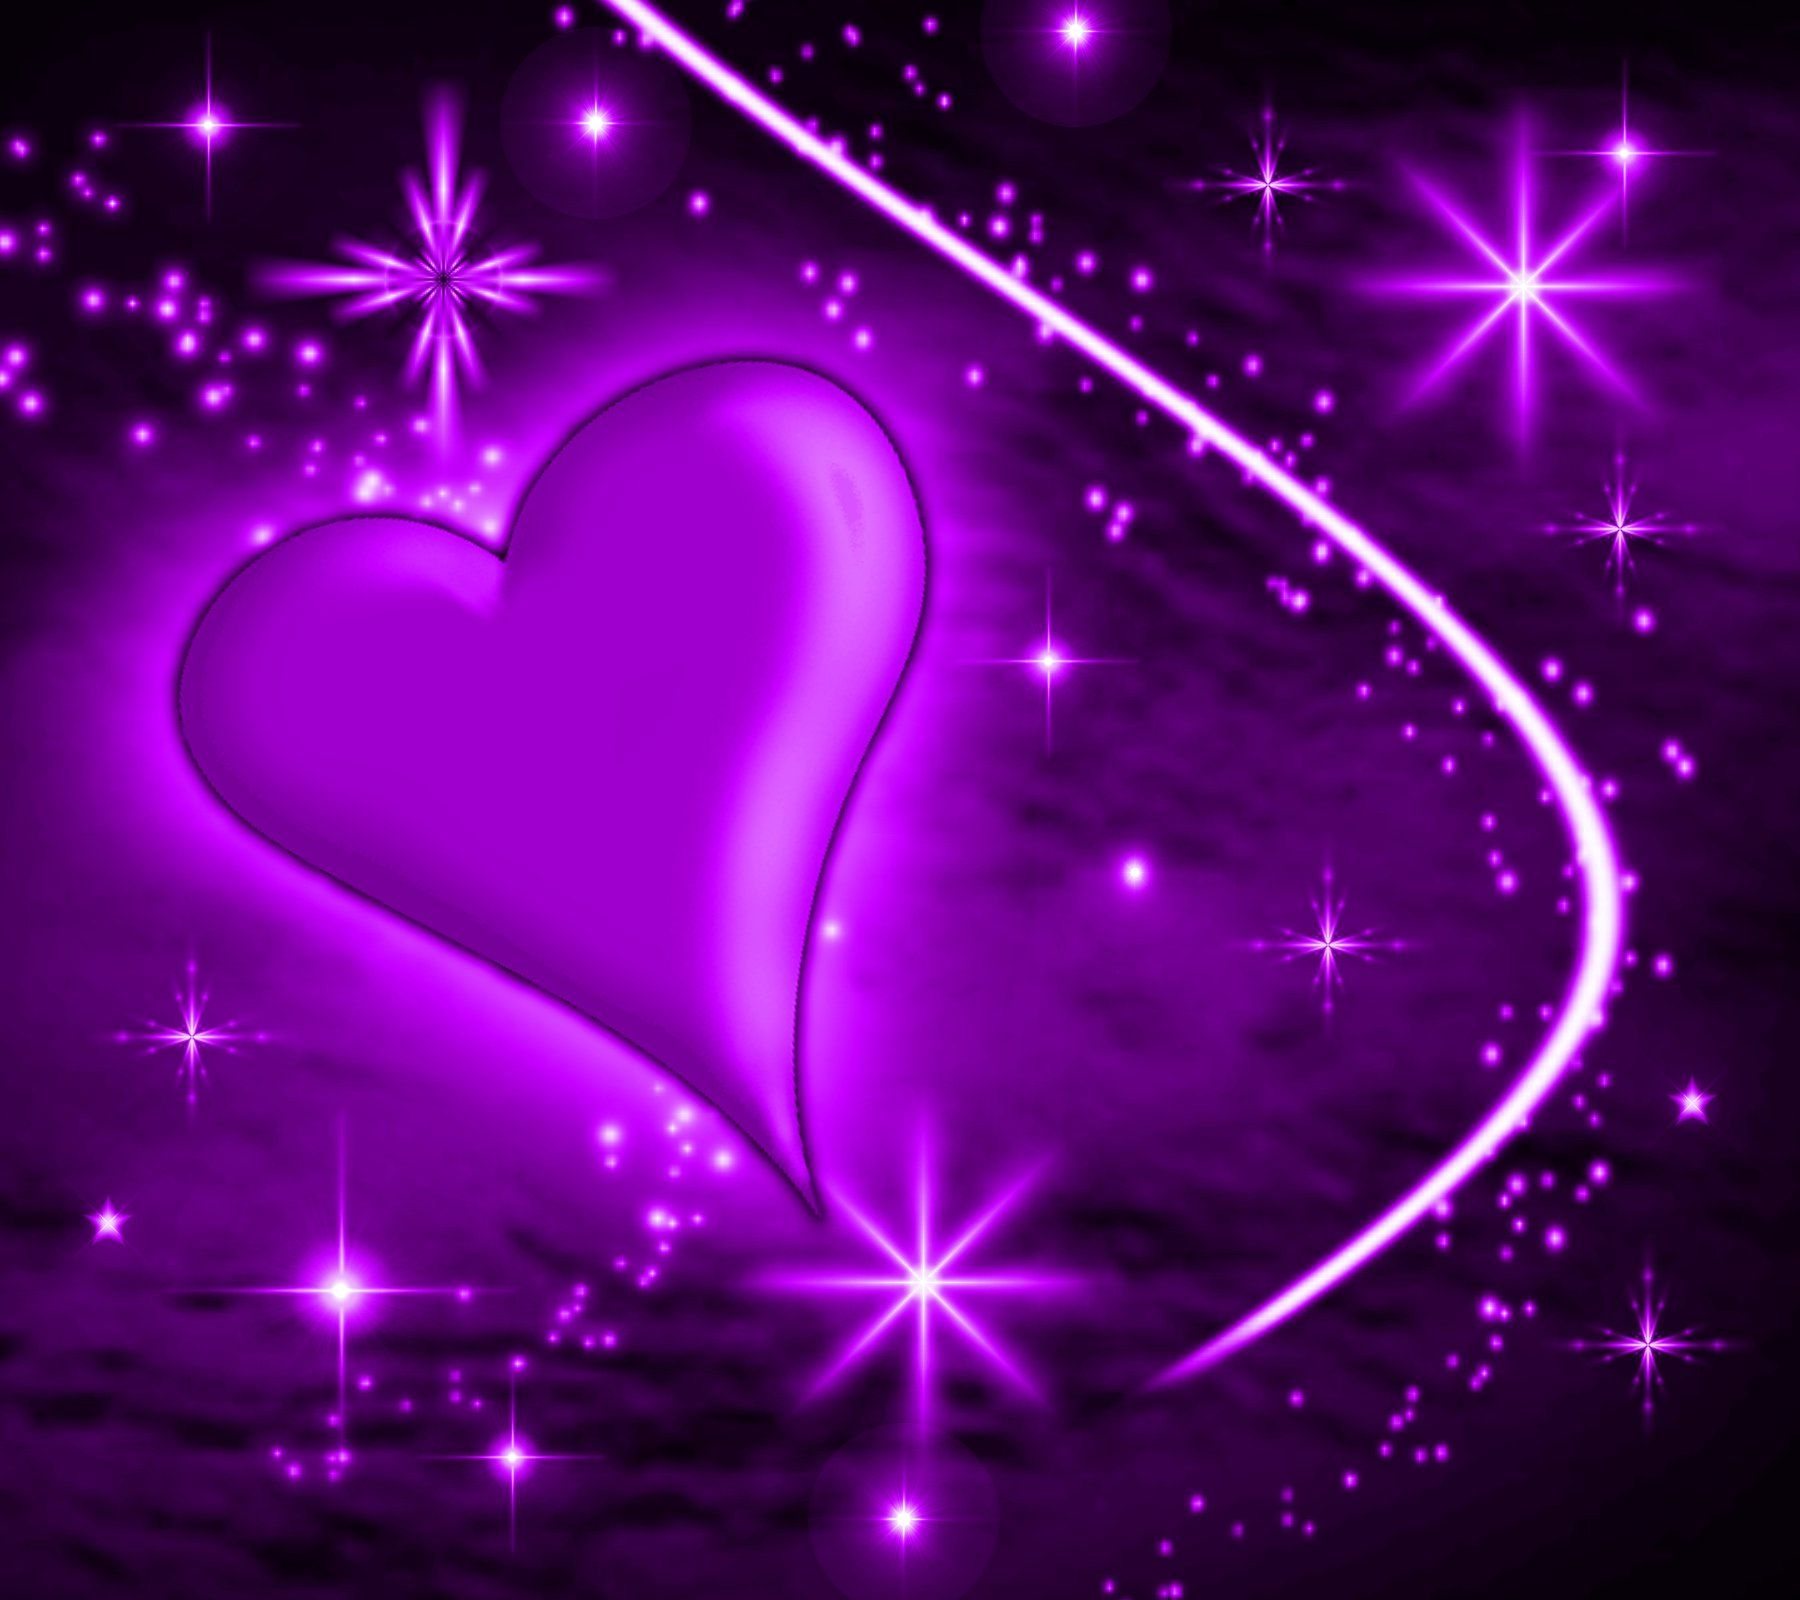 Purple Heart Background Wallpaper Image Purple Heart